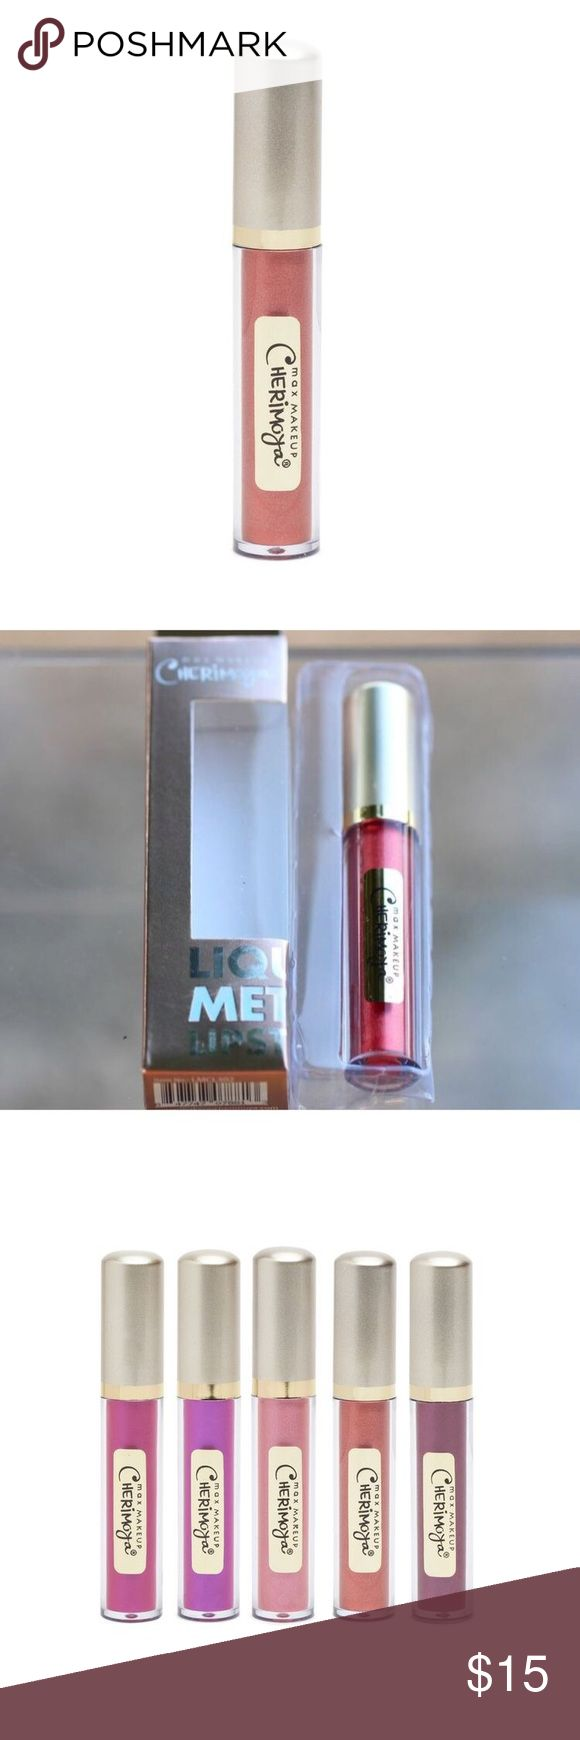 🆕[cherimoya] liquid metal lipstick • style name: liquid metal lipstick • color: the maker's mark (copper/red) • see above for details from company website • condition: new in box, never used ____________________________________________________ ✅ make an offer!     ✅ i bundle! ✅ posh compliant closet ⛔️ no trades 🛍 boutique item Max Makeup Cherimoya Makeup Lipstick